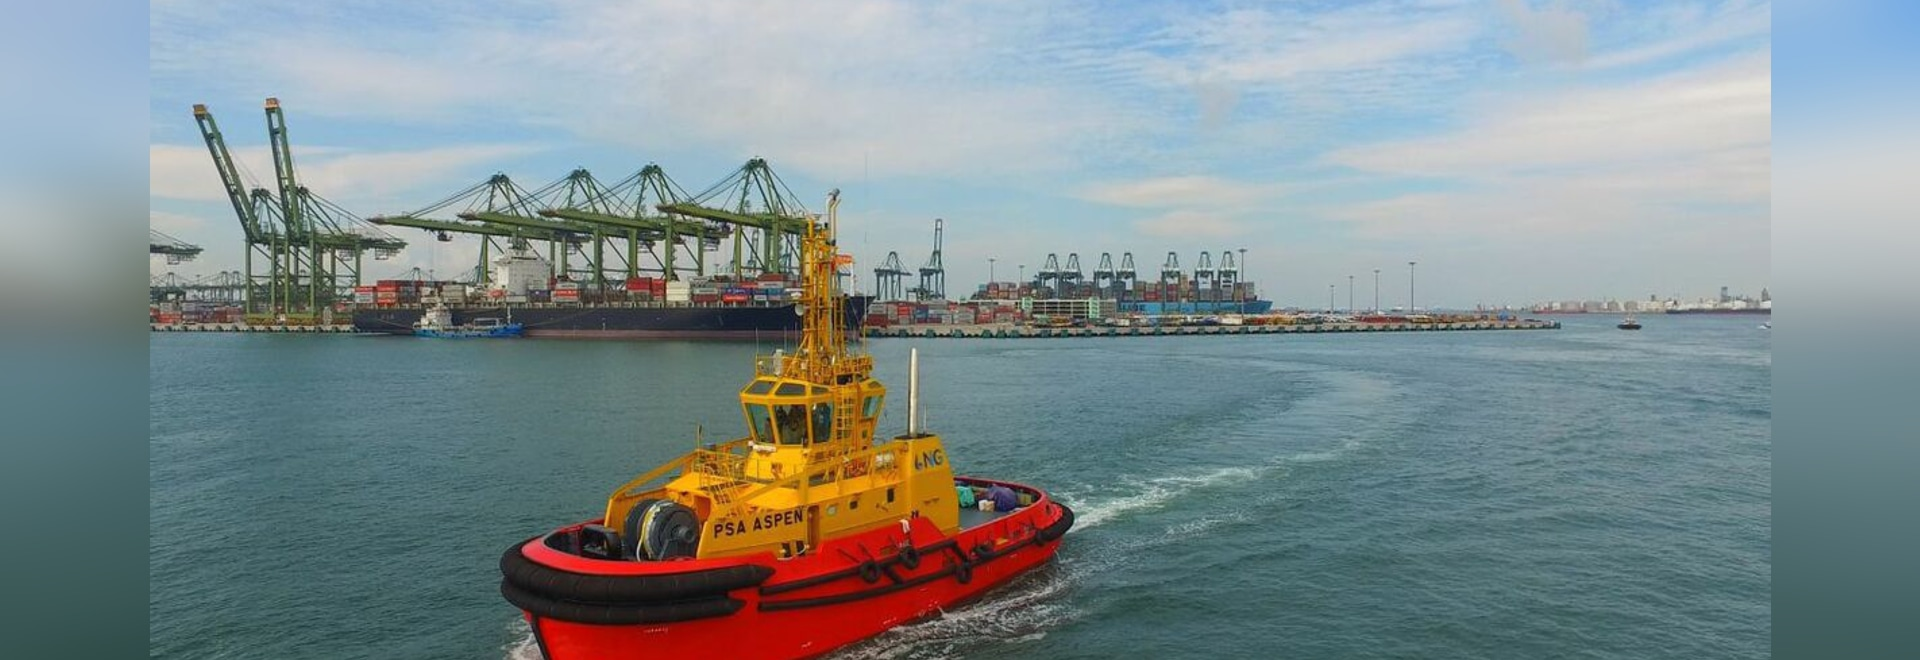 PSA Aspen is the first LNG-fuelled tug in PSA Marine's fleet